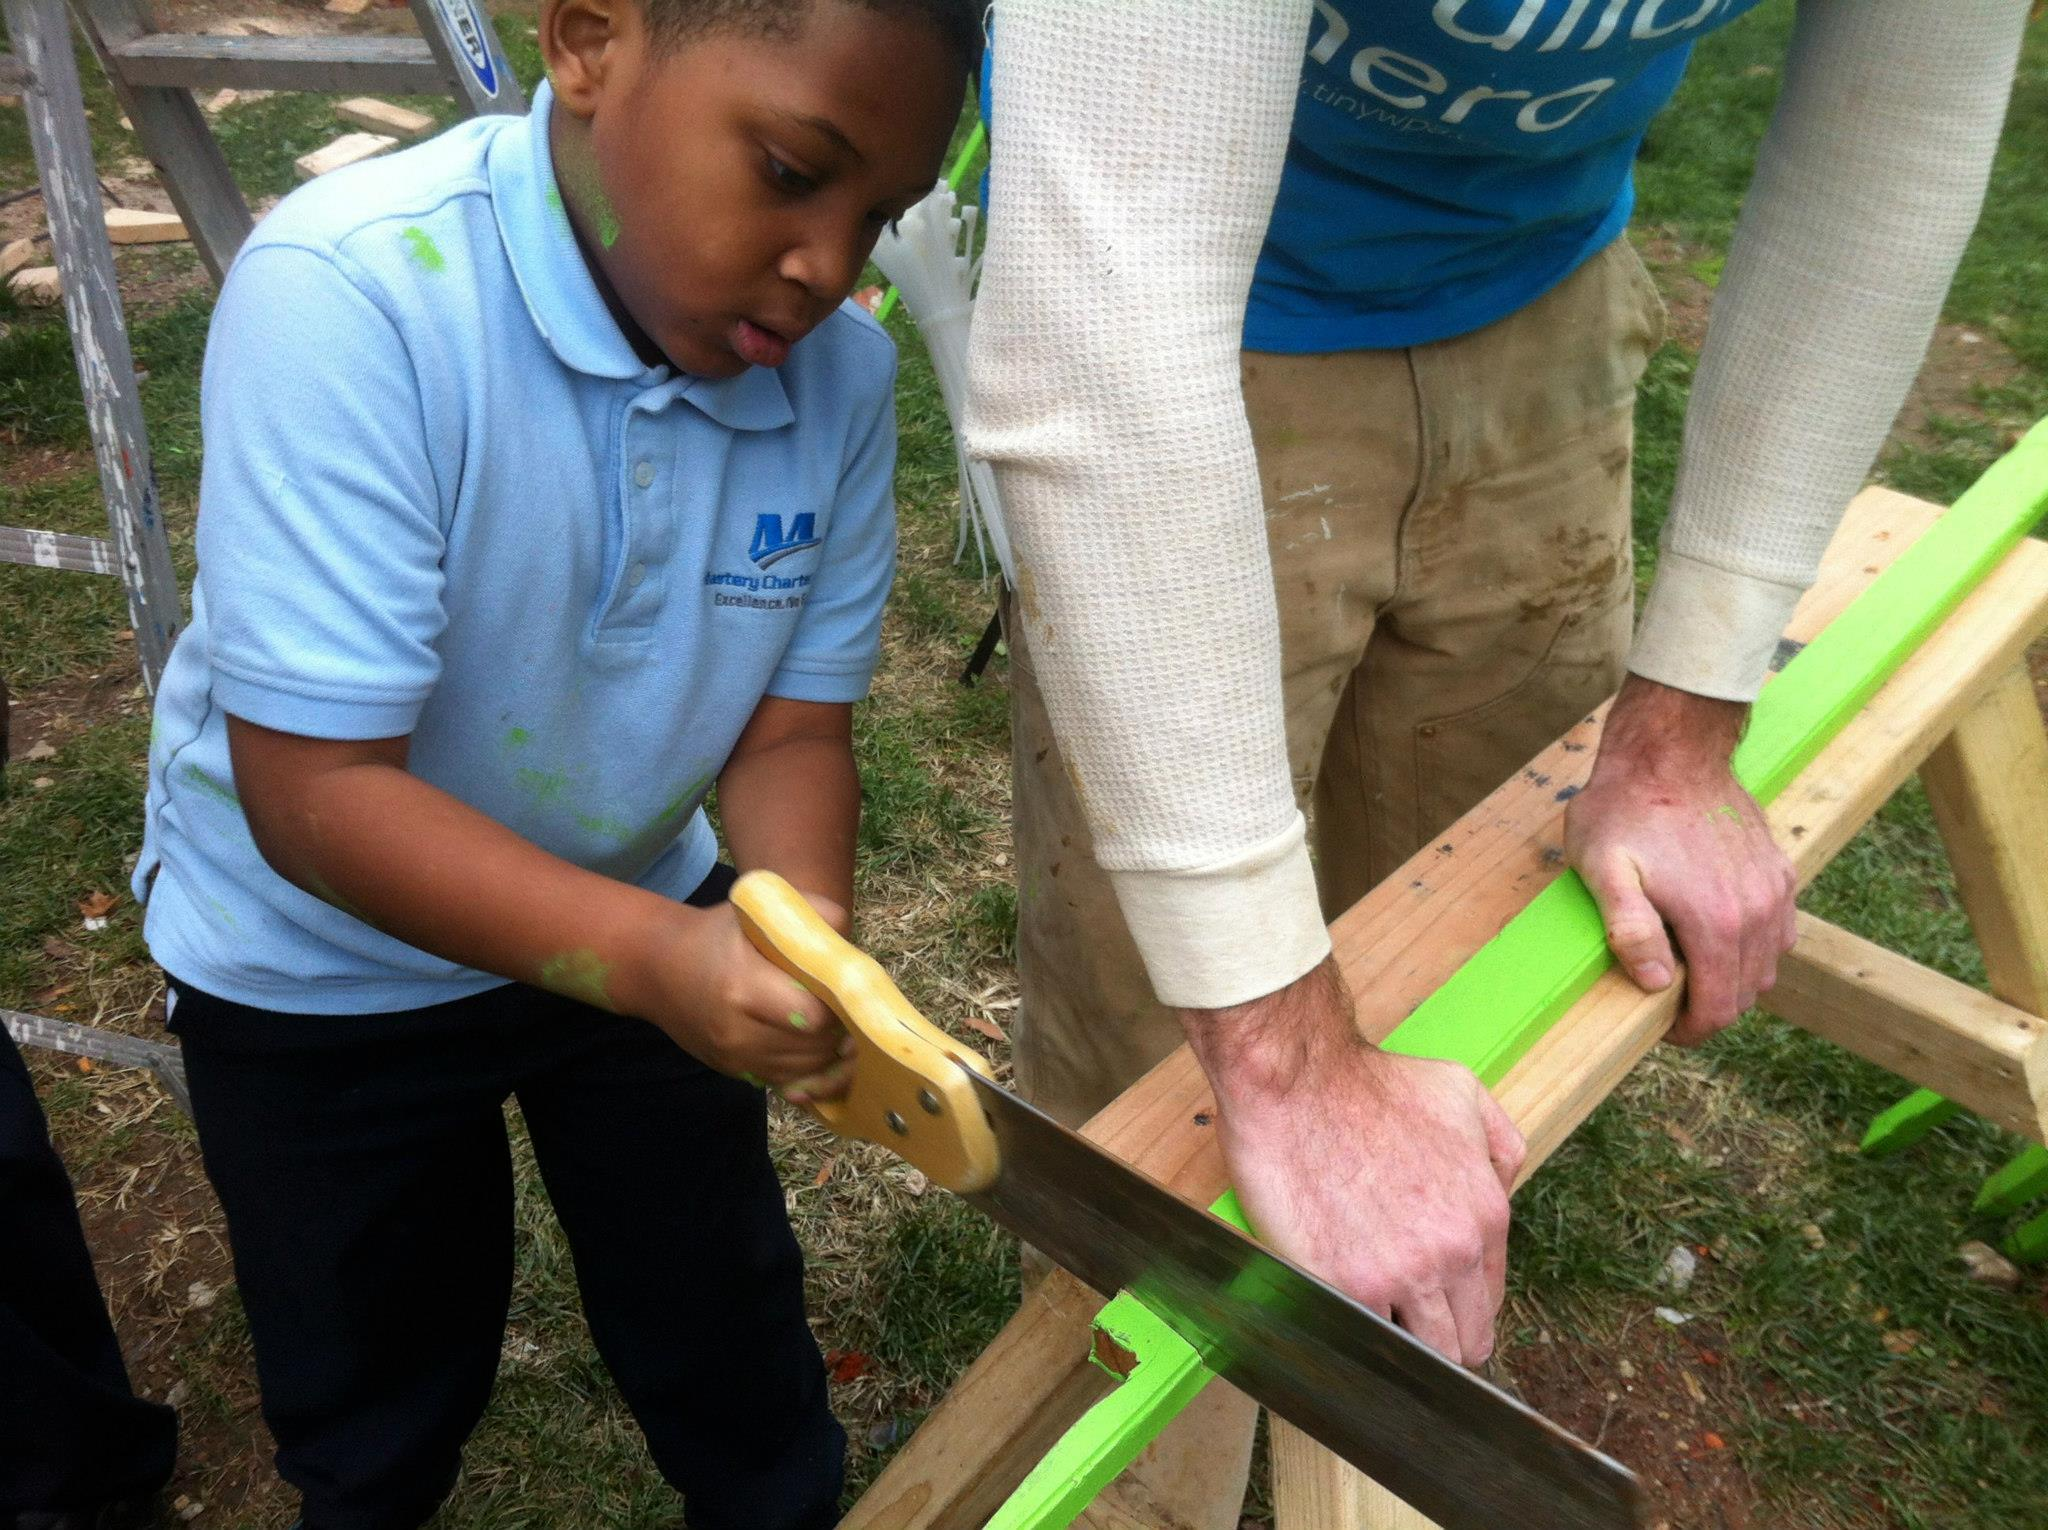 No one is too young to use a saw - with the right supervision of course.